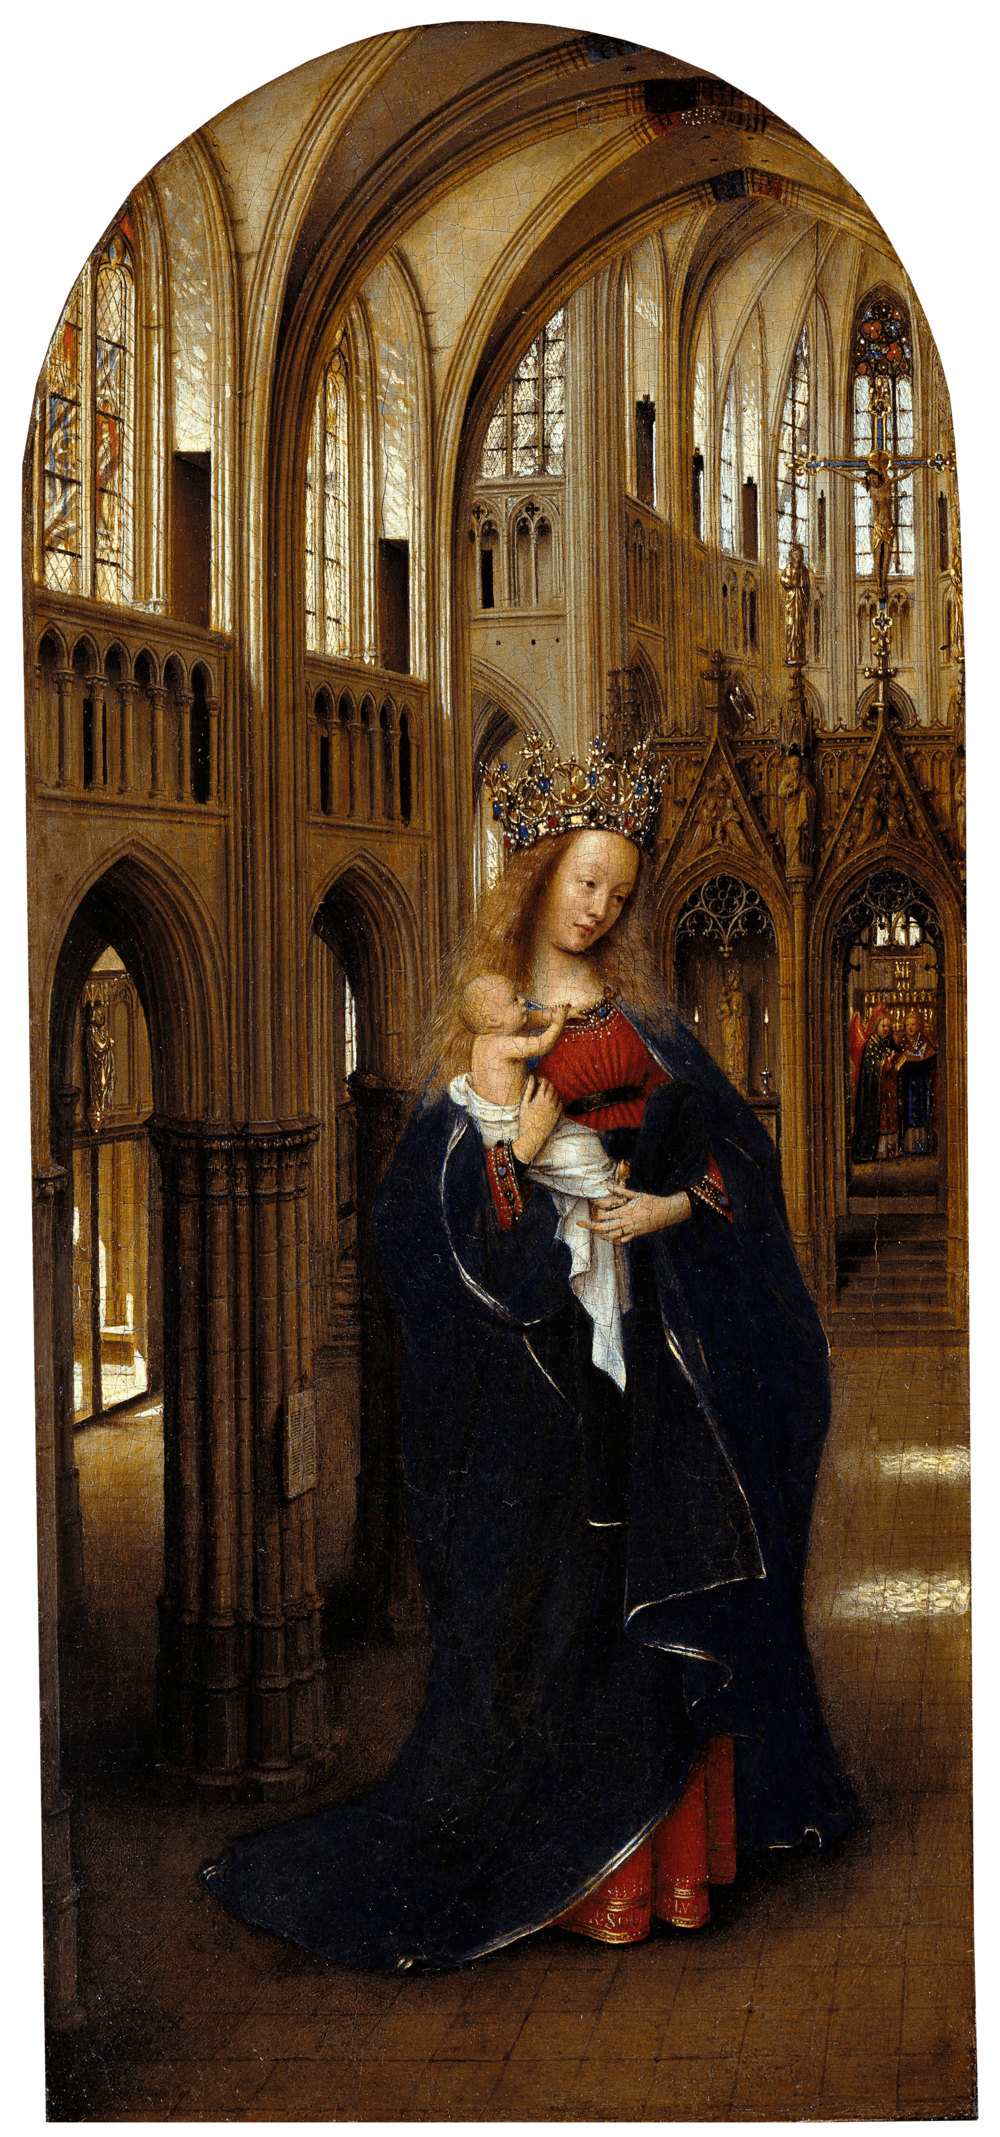 Figure. 2) Jan van Eyck, Madonna in the Church, 1438-40 oil on panel